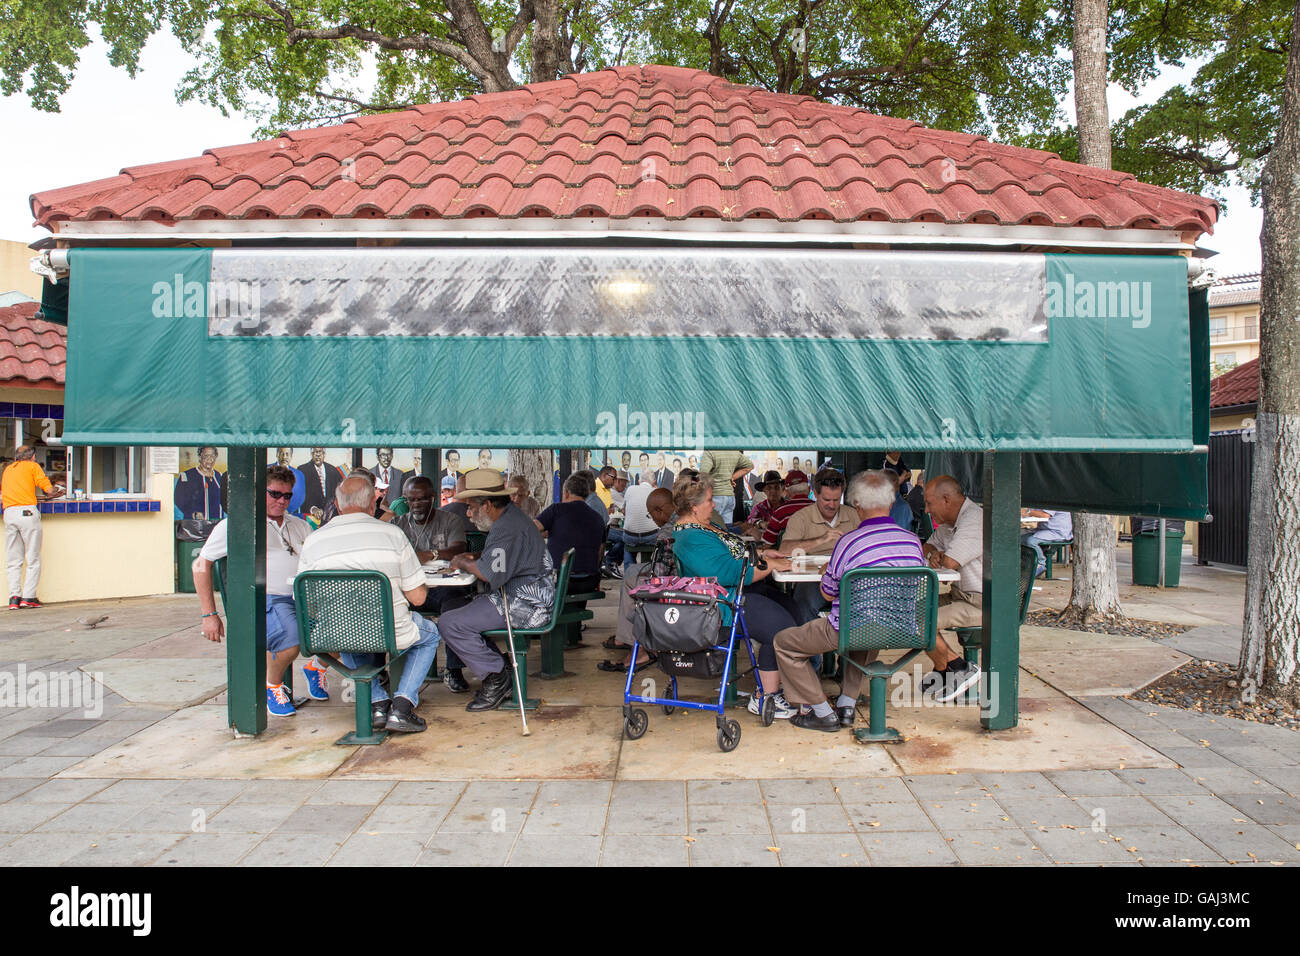 MIAMI, FLORIDA - APRIL 25, 2016: Game players at historic Domino Park along Calle Ocho in Little Havana. - Stock Image